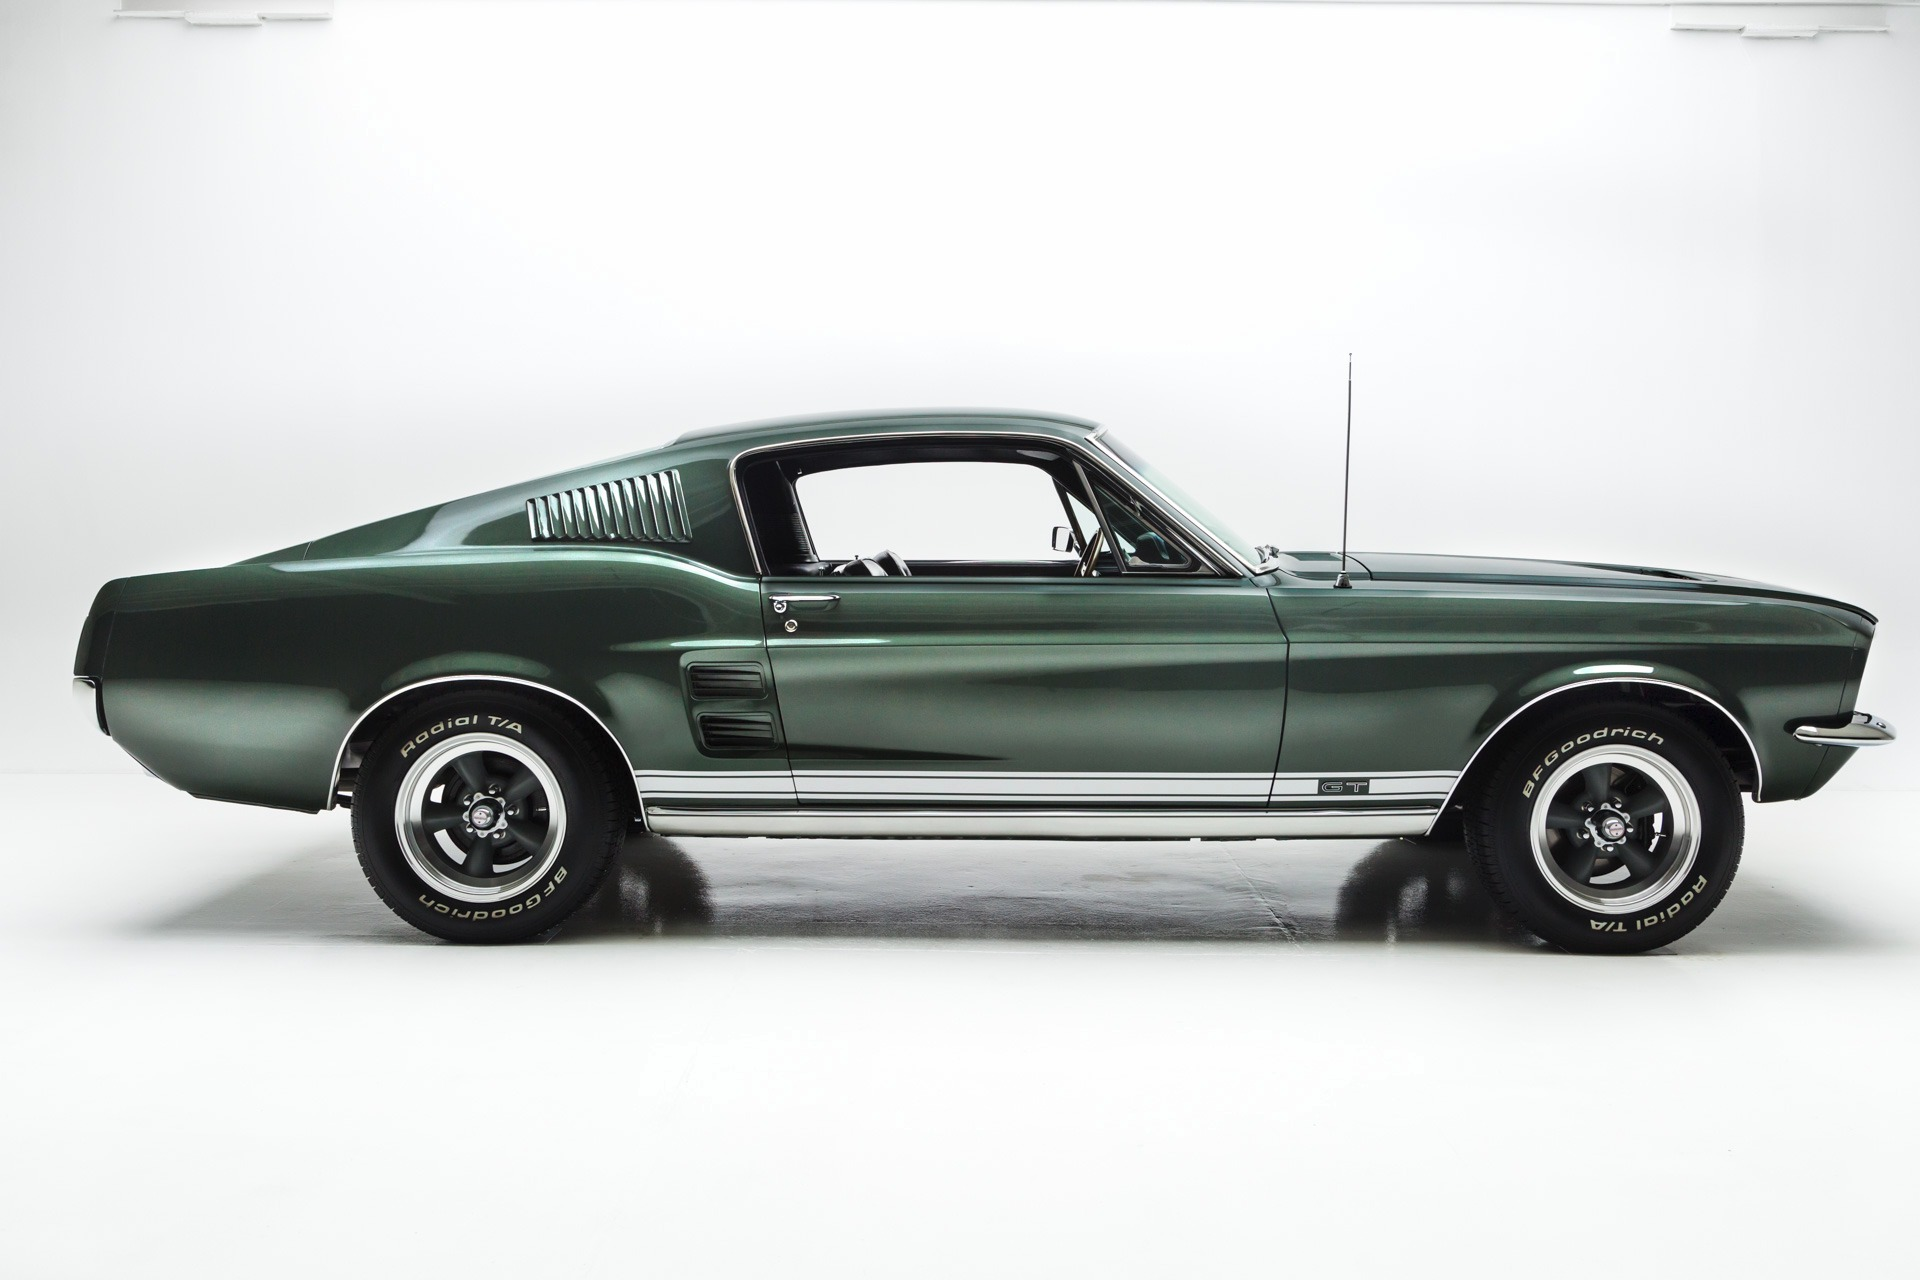 1967 ford mustang gt hipo 289 4 speed